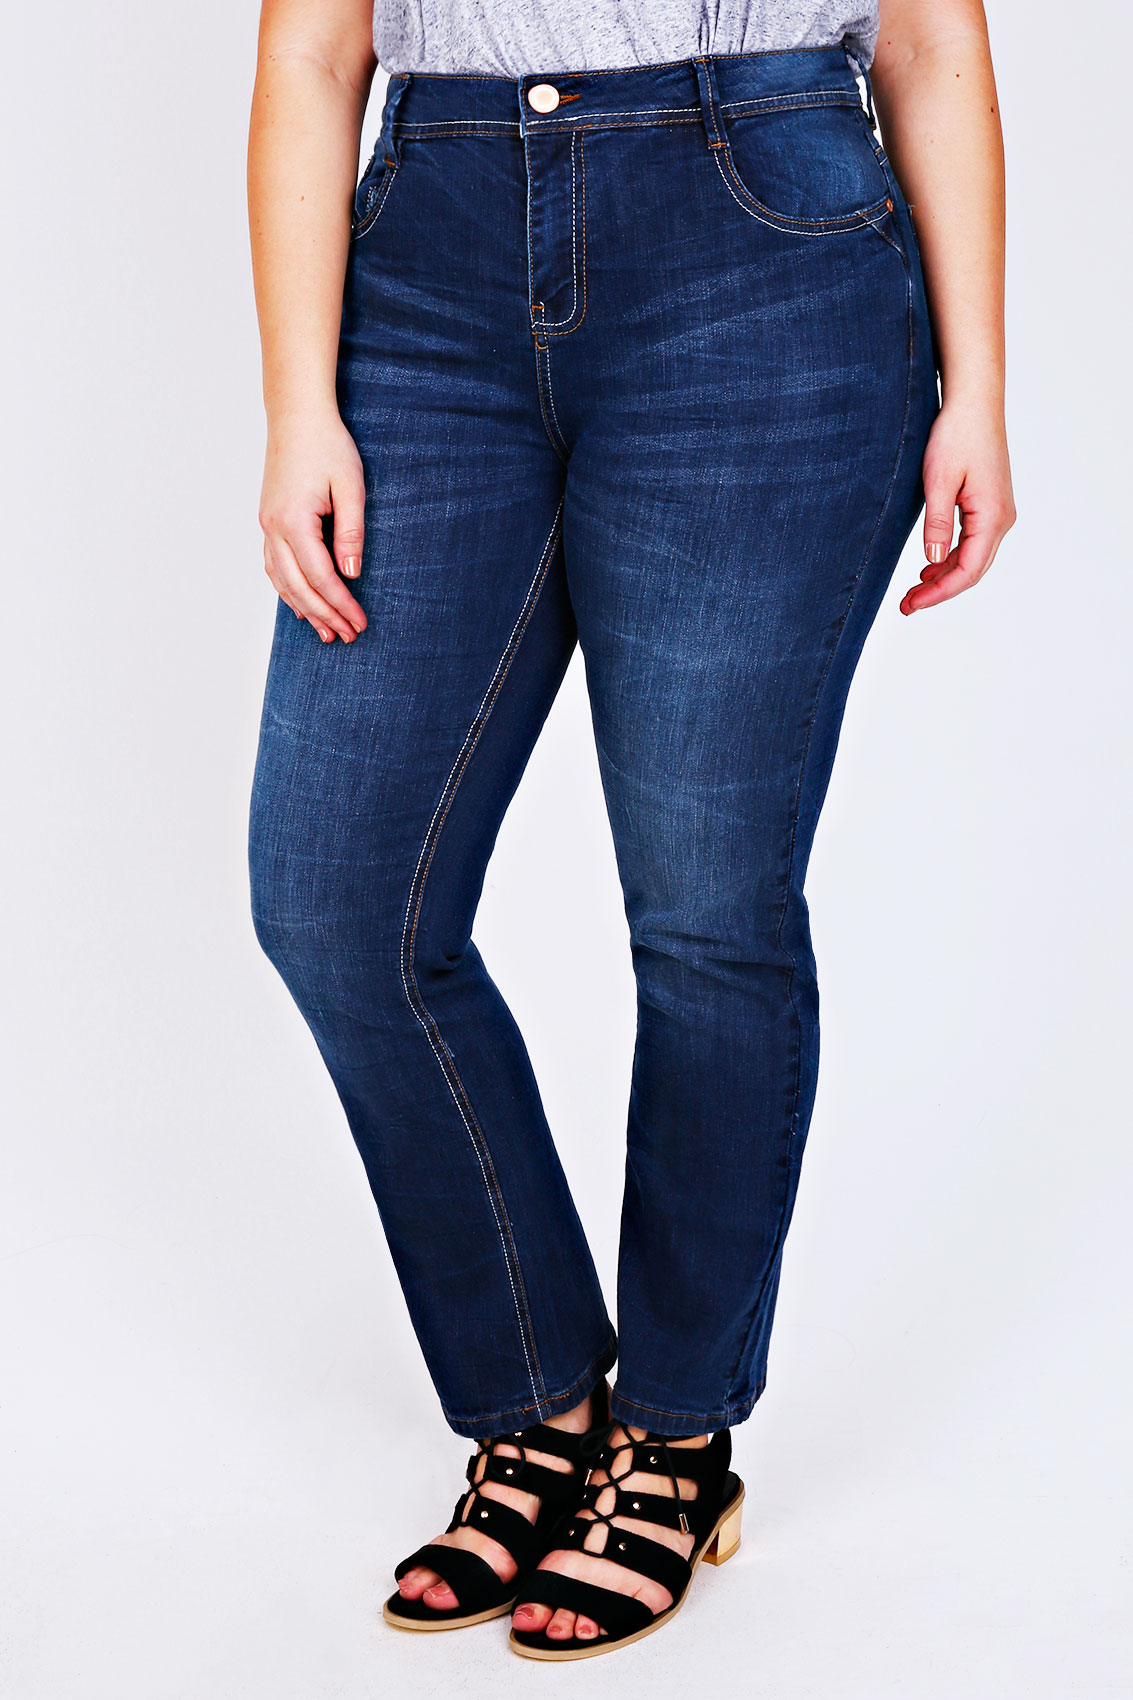 Shop for blue straight leg jeans online at Target. Free shipping on purchases over $35 and save 5% every day with your Target REDcard.